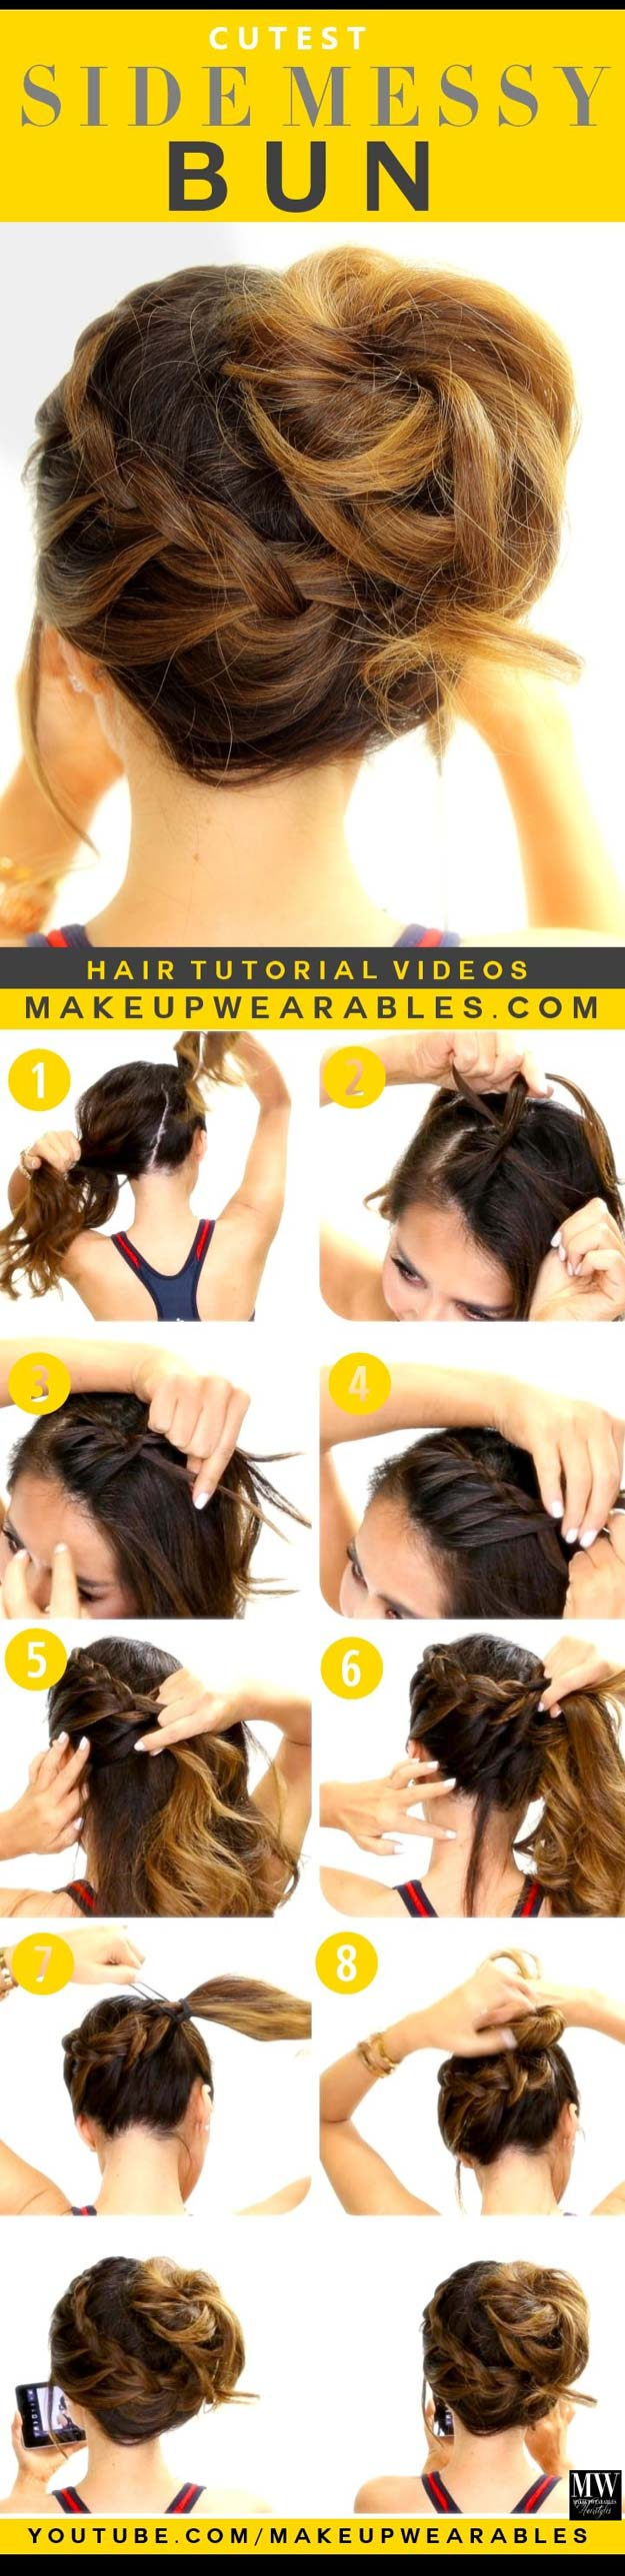 Best Hair Braiding Tutorials - Siden Messy Bun - Easy Step by Step Tutorials for Braids - How To Braid Fishtail, French Braids, Flower Crown, Side Braids, Cornrows, Updos - Cool Braided Hairstyles for Girls, Teens and Women - School, Day and Evening, Boho, Casual and Formal Looks #hairstyles #braiding #braidingtutorials #diyhair